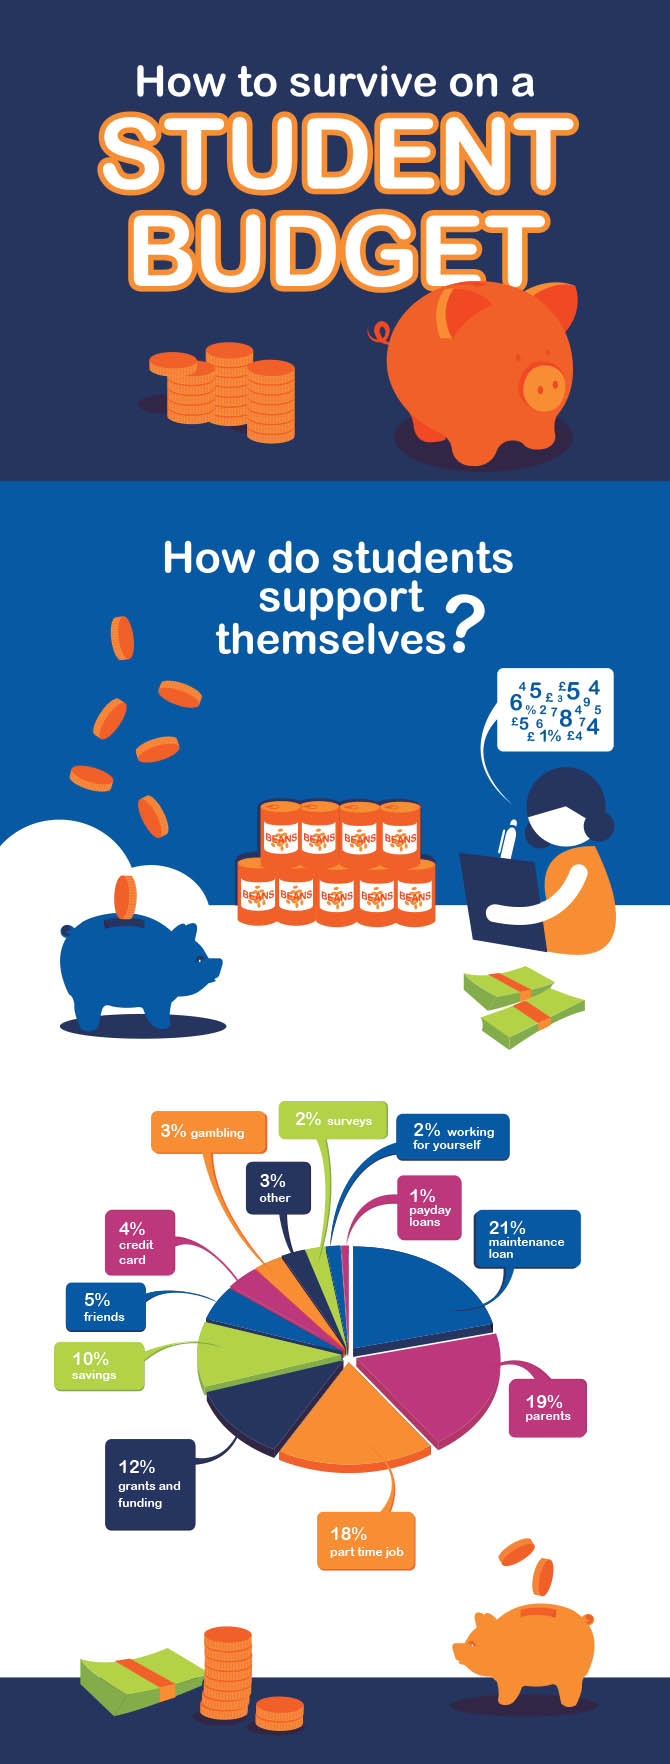 How to Survive on a Student Budget #infographic